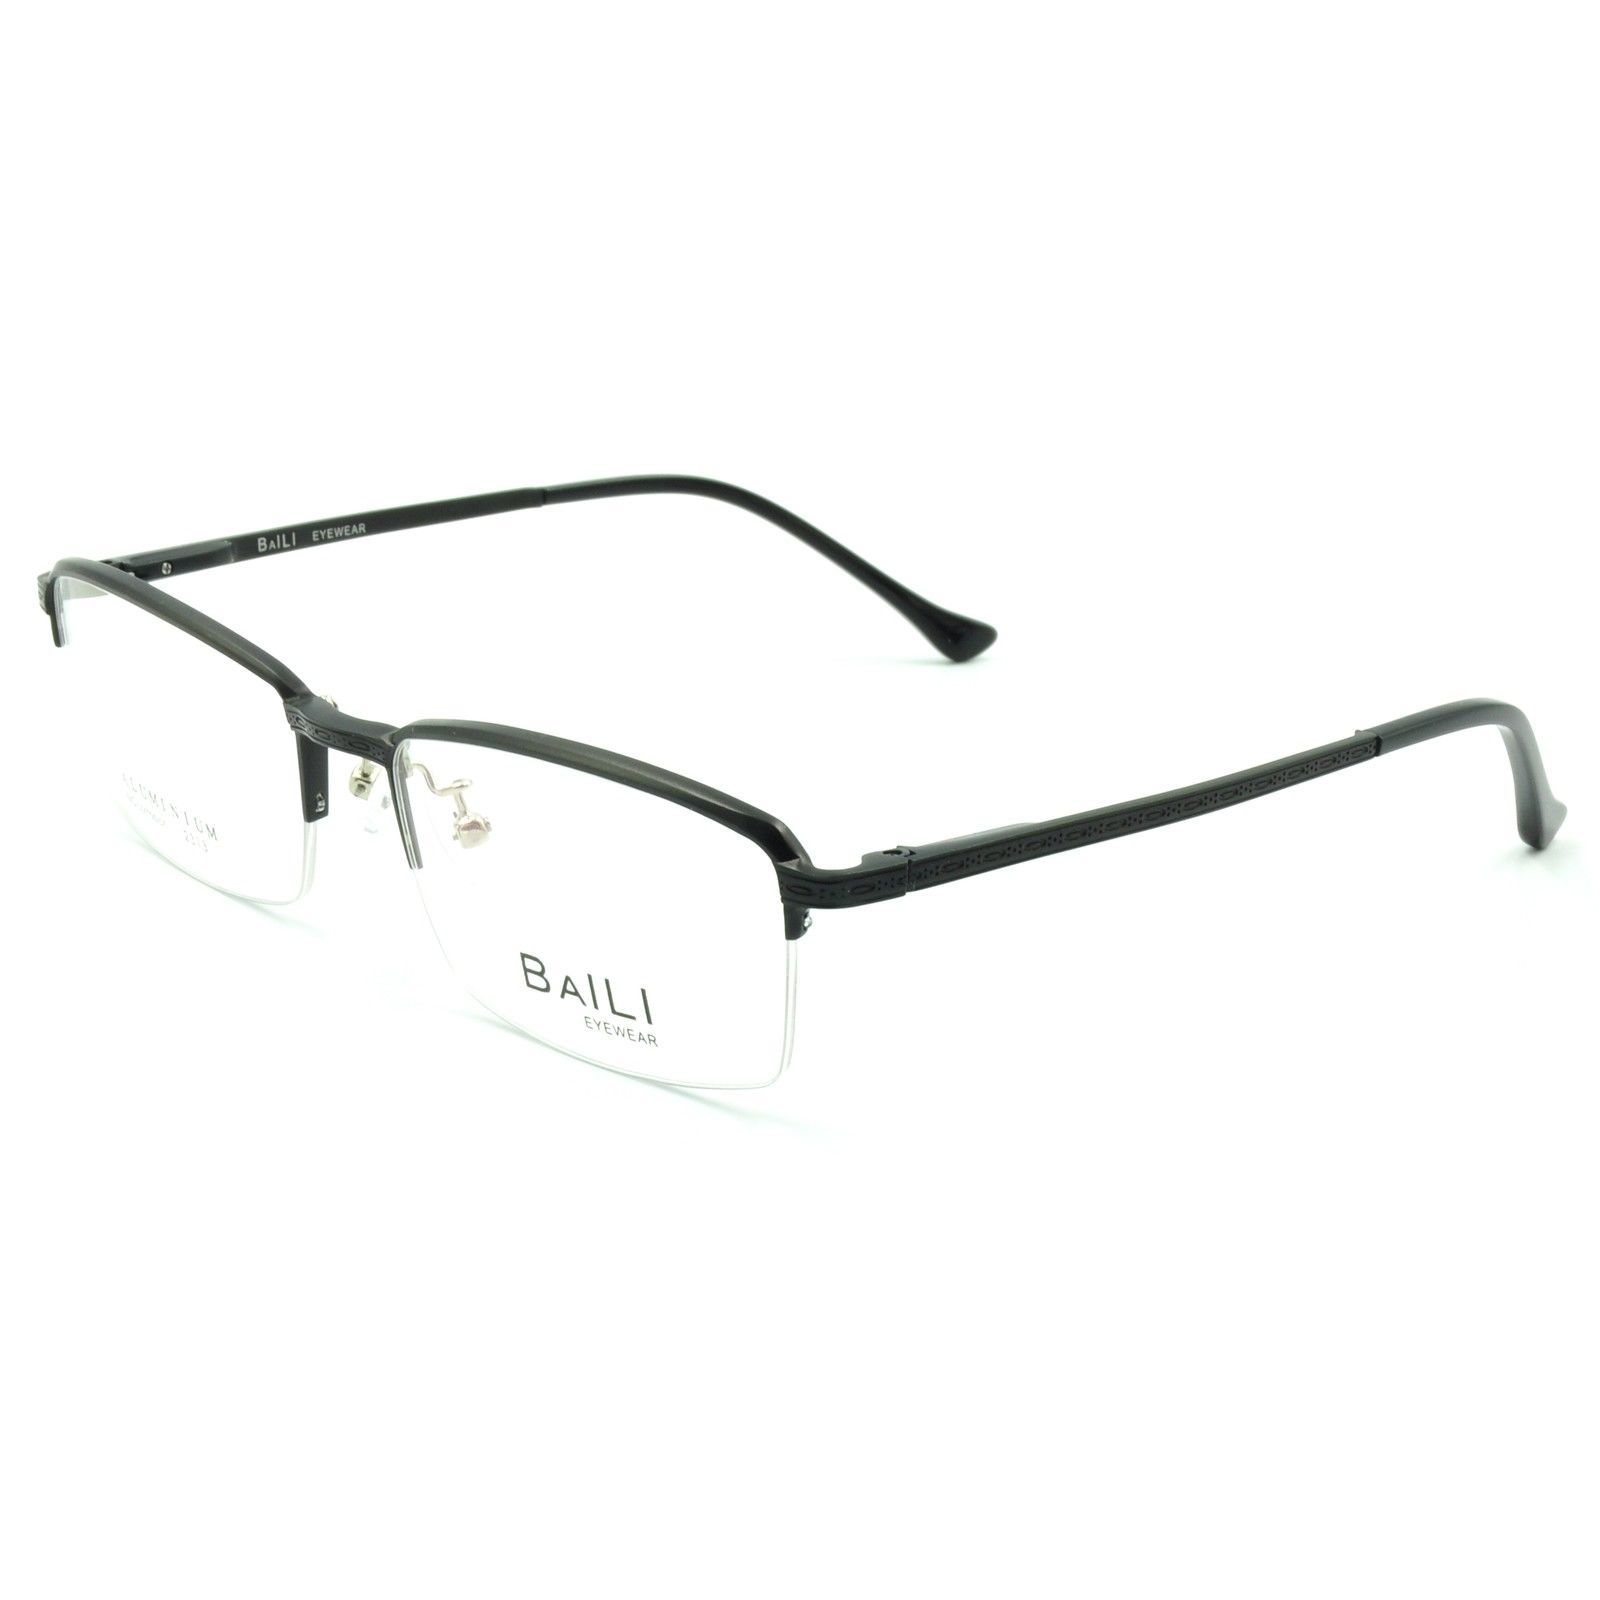 Rimless Eyeglass Frame Parts : New Mens Half Rimless Eyeglass Frames Spring and 33 ...